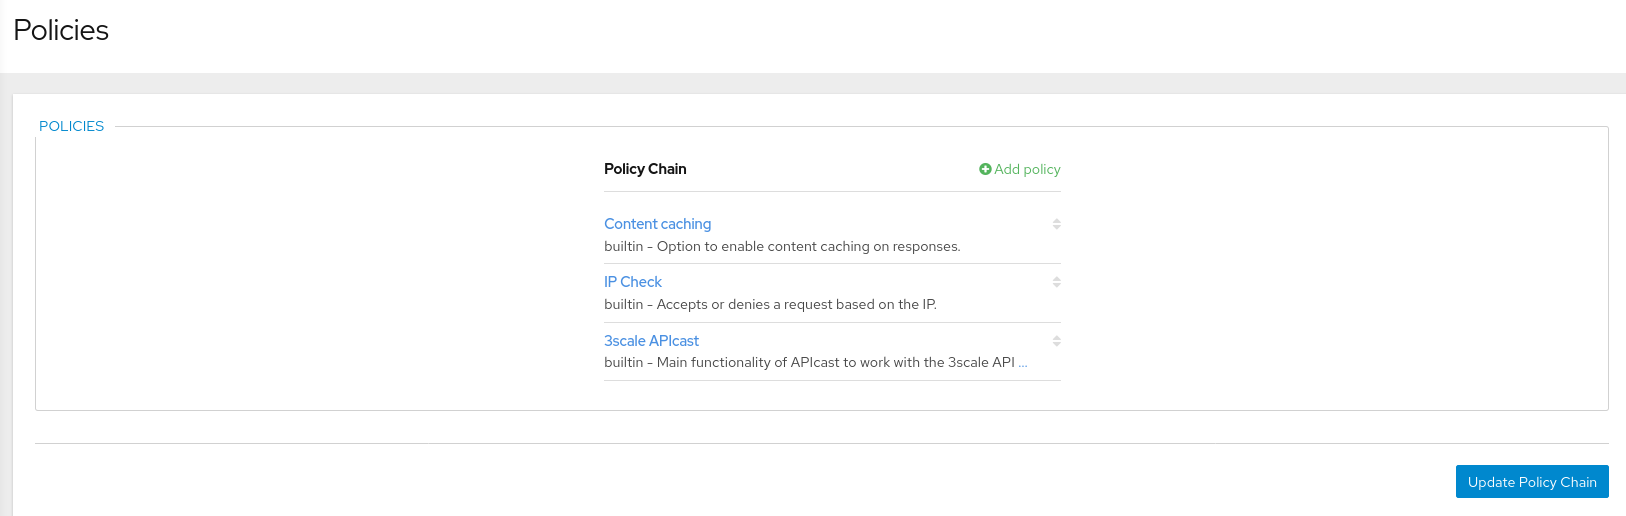 policyChainOverview